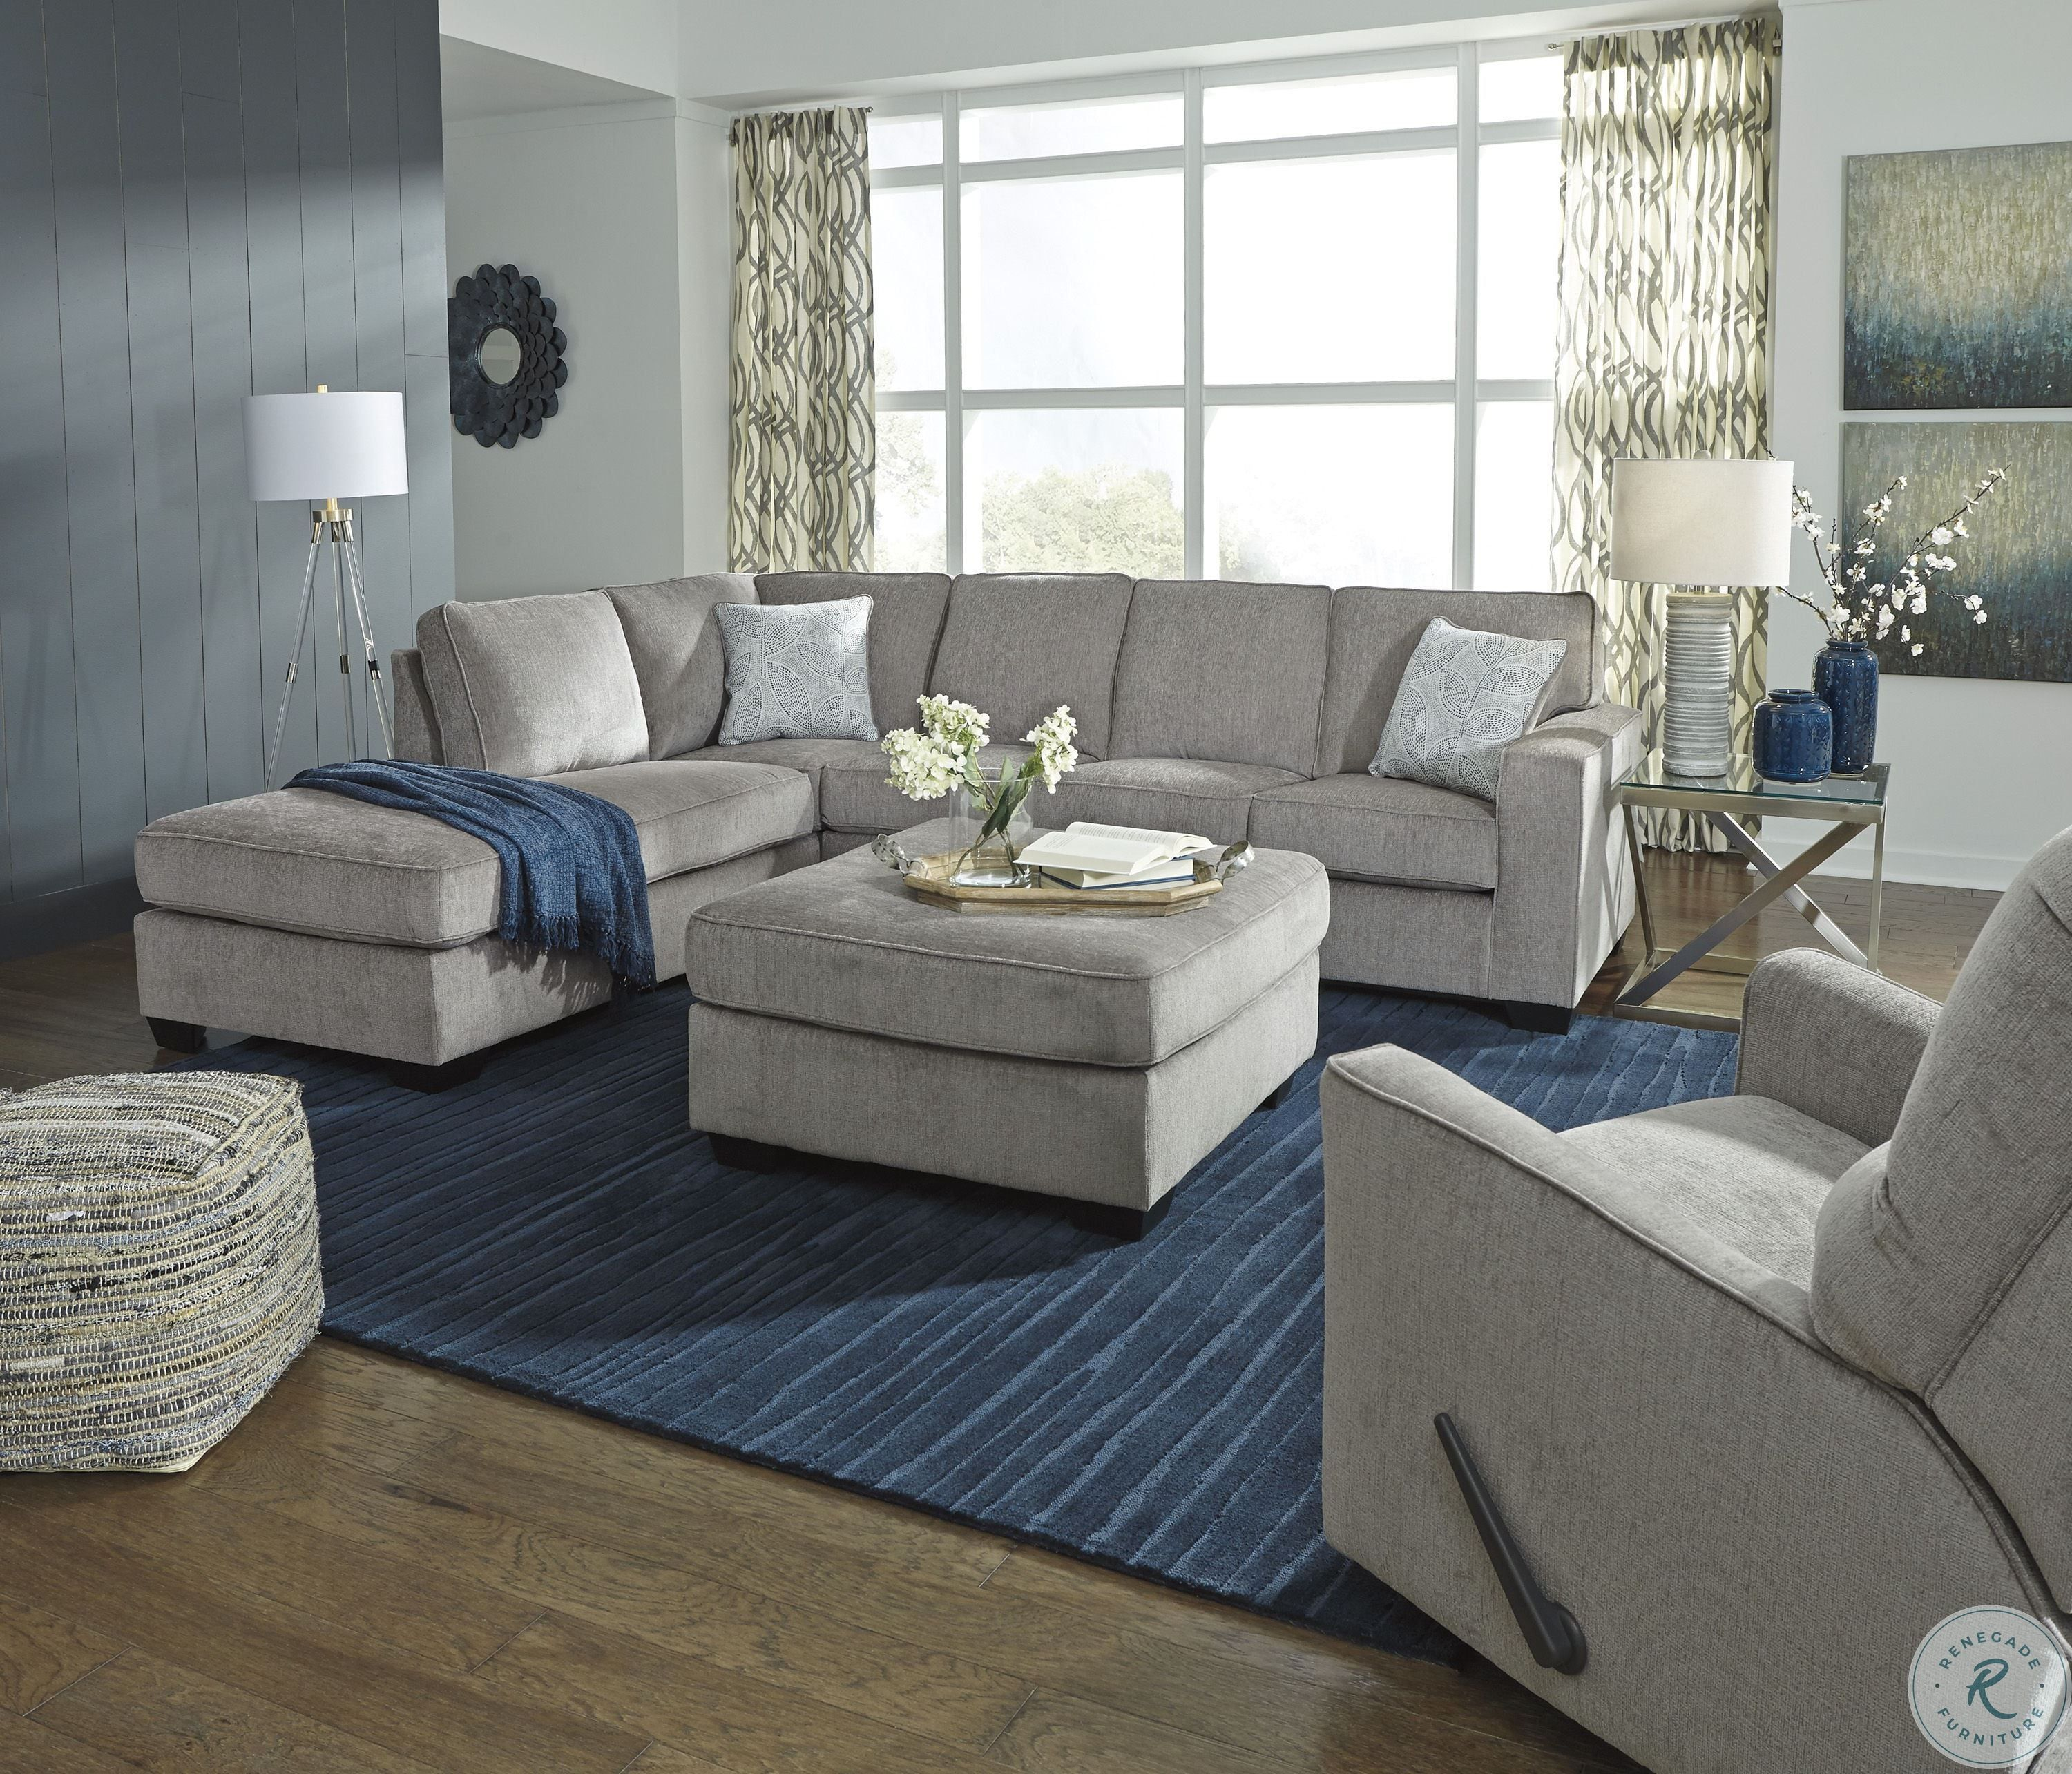 Darcy Stone Laf Sectional Living Room Sectional Furniture Sectional Sofa [ 2568 x 3000 Pixel ]